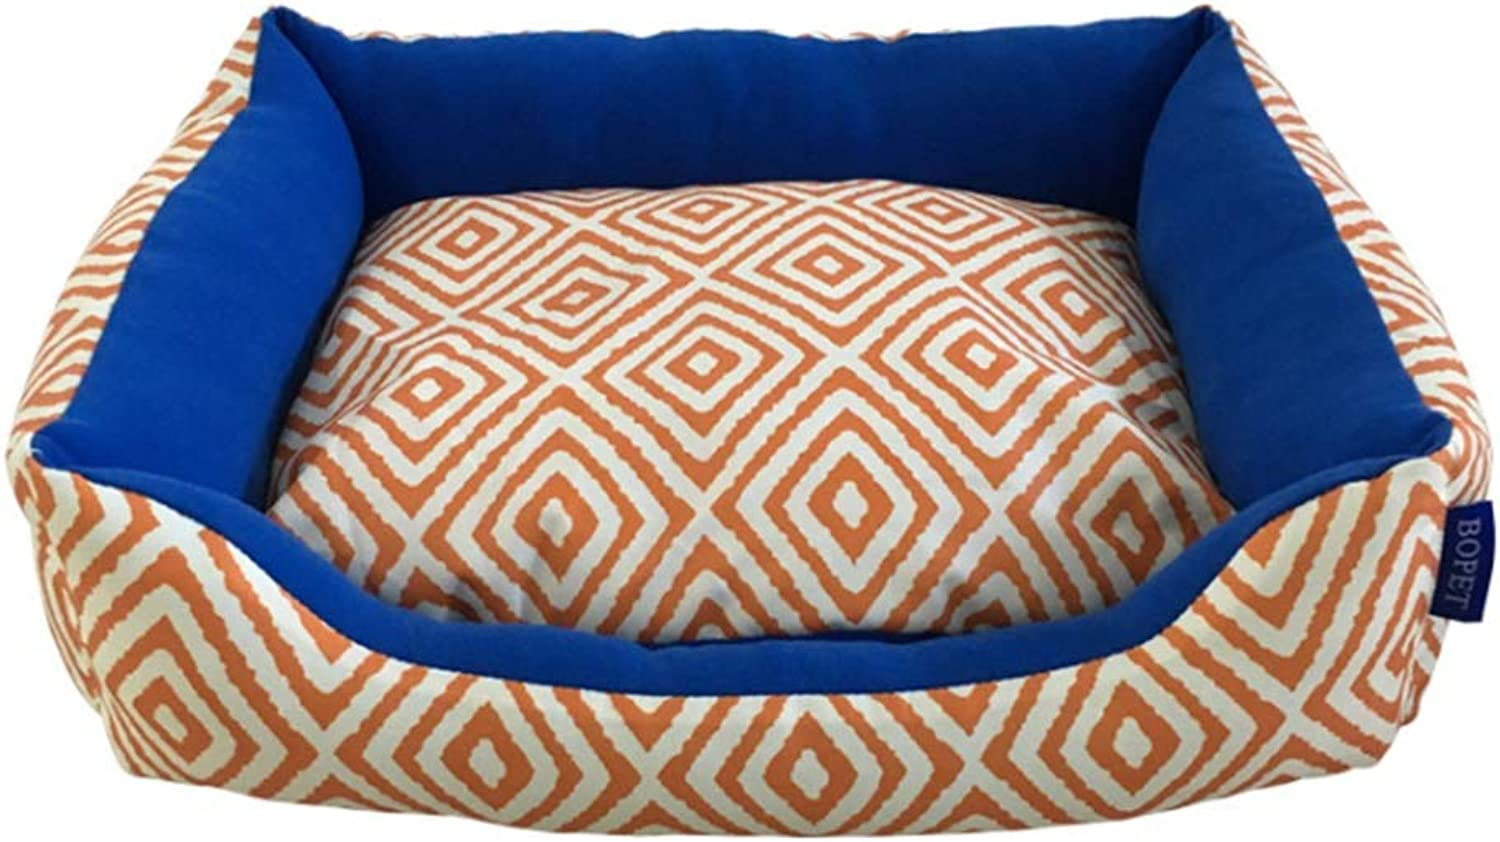 Cvthfyky Spring And Summer Dog Kennel Cat Litter Waterproof Printing Pet Nest Pad Removable And Washable Pet Supplies (color   orange, Size   S)